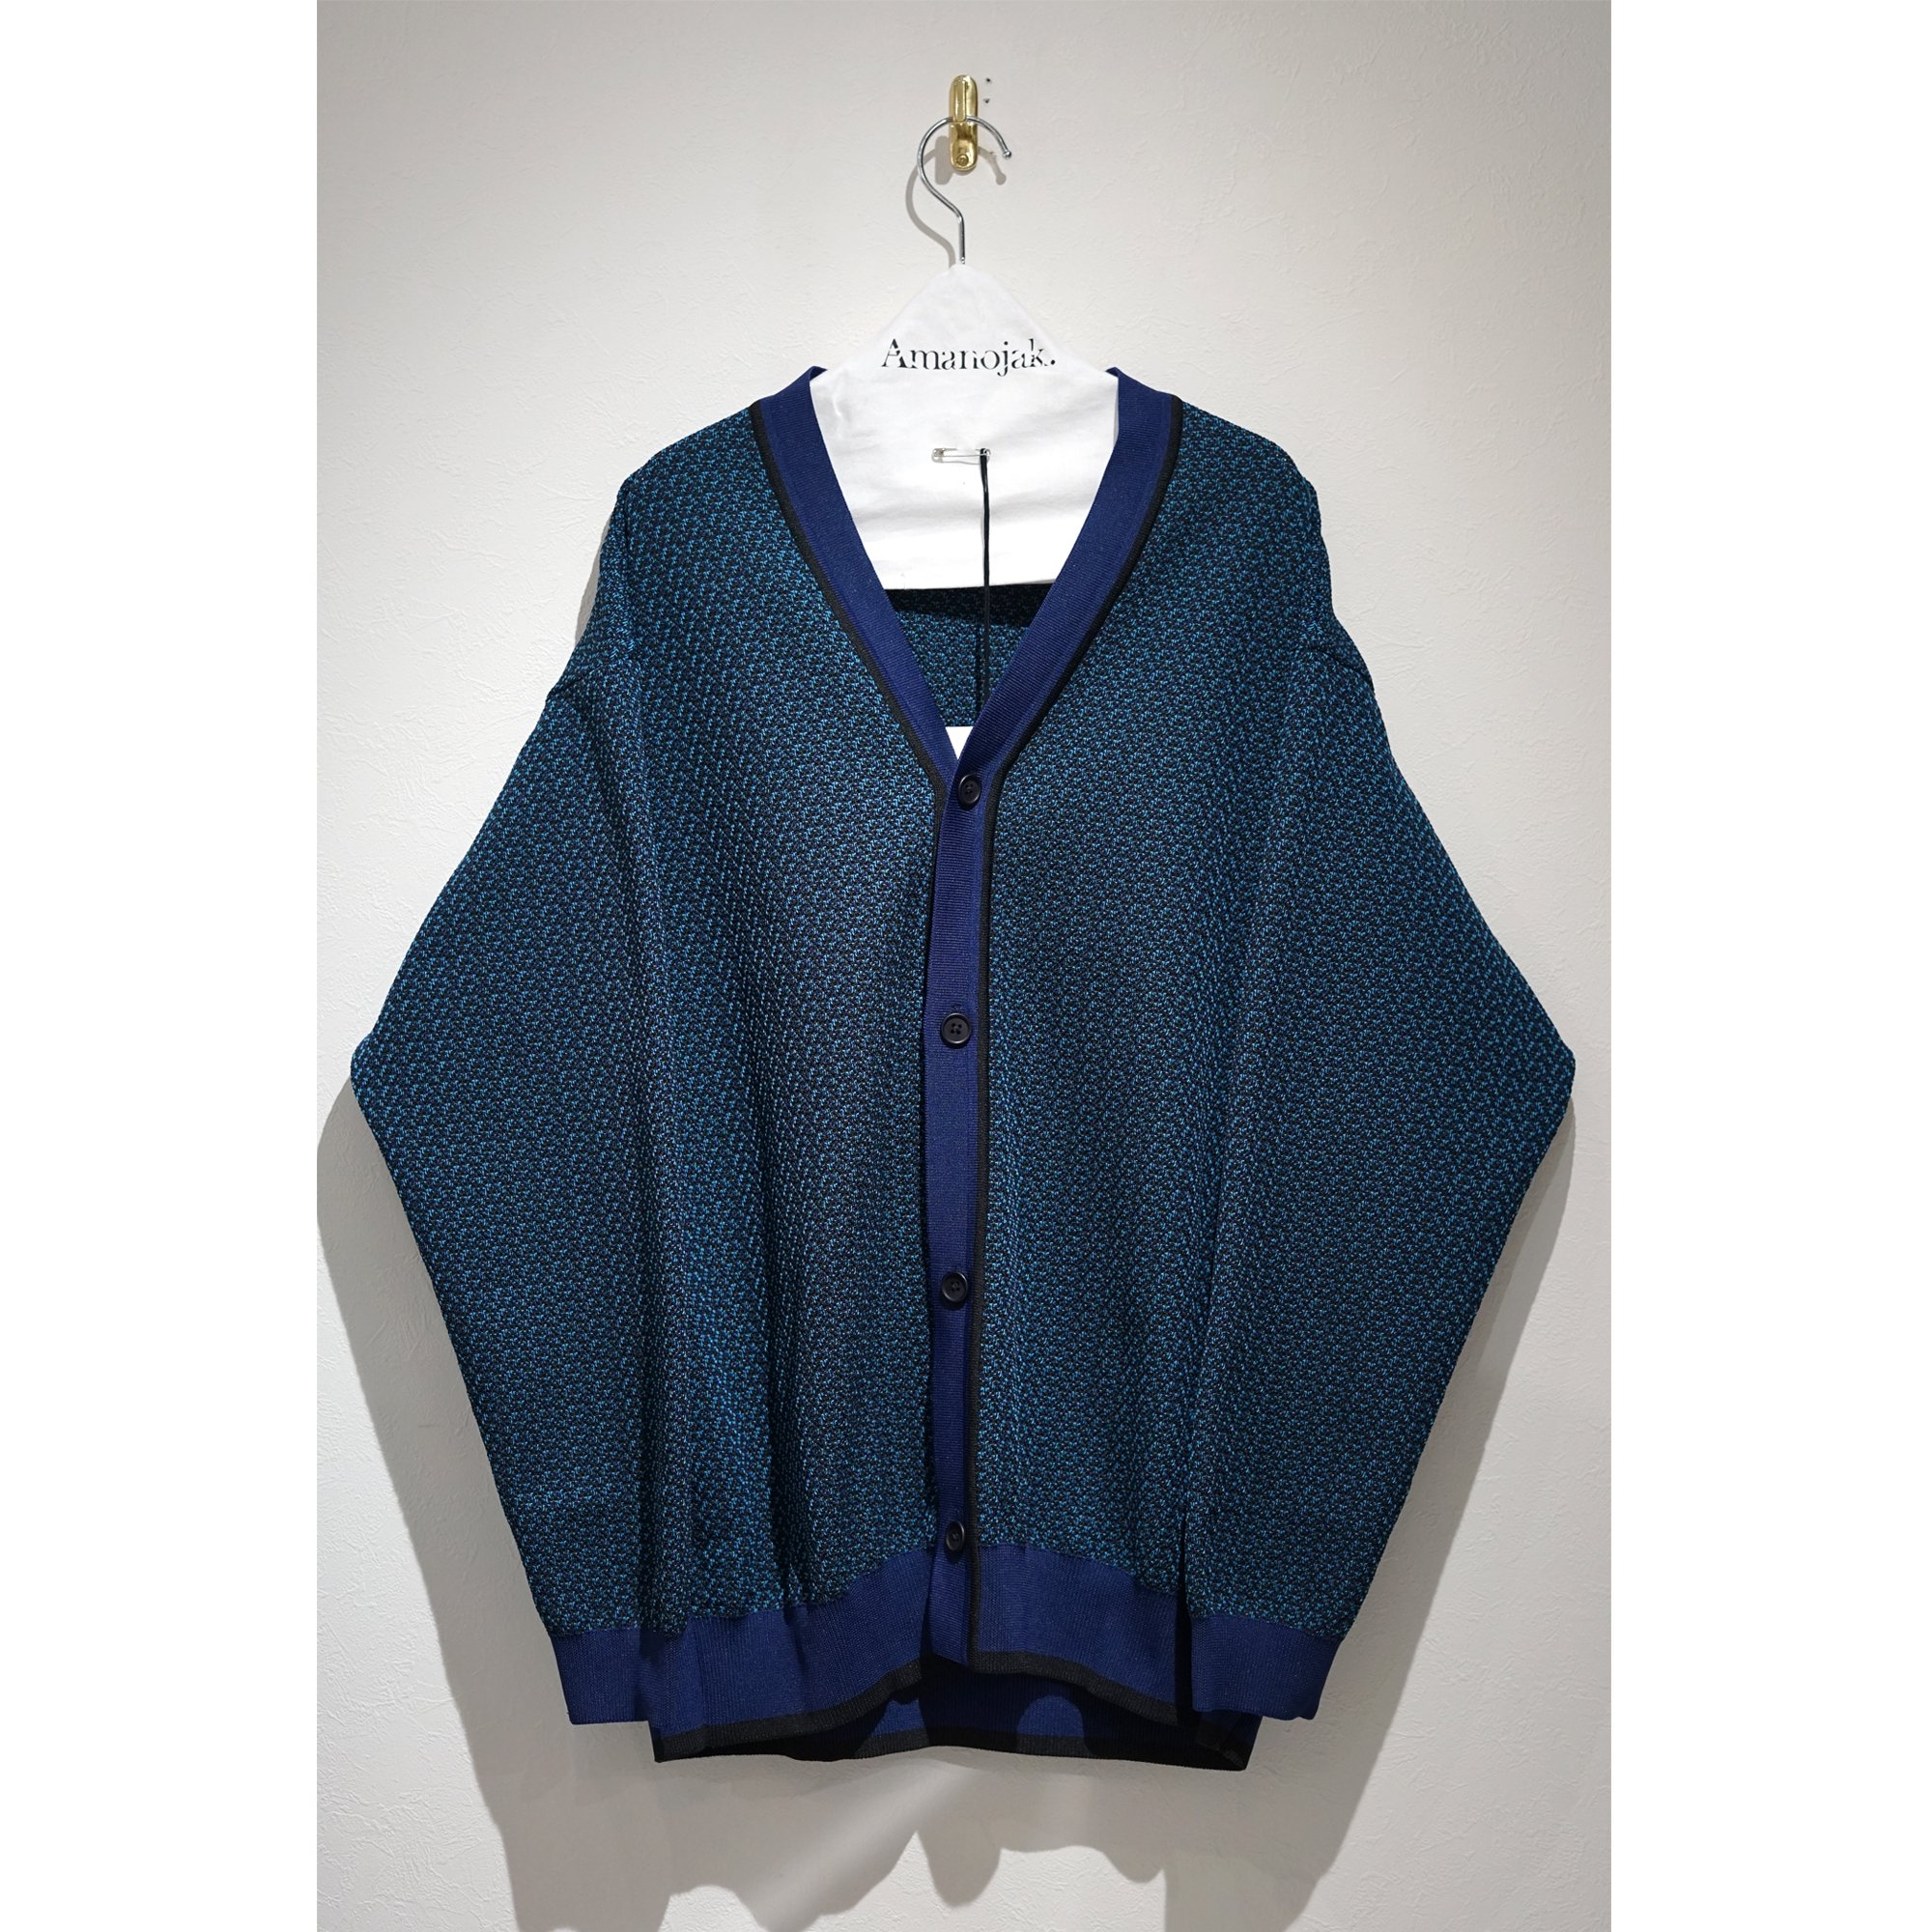 08sircus-POLYESTER JACQUARD KNIT CARDIGAN BLUE